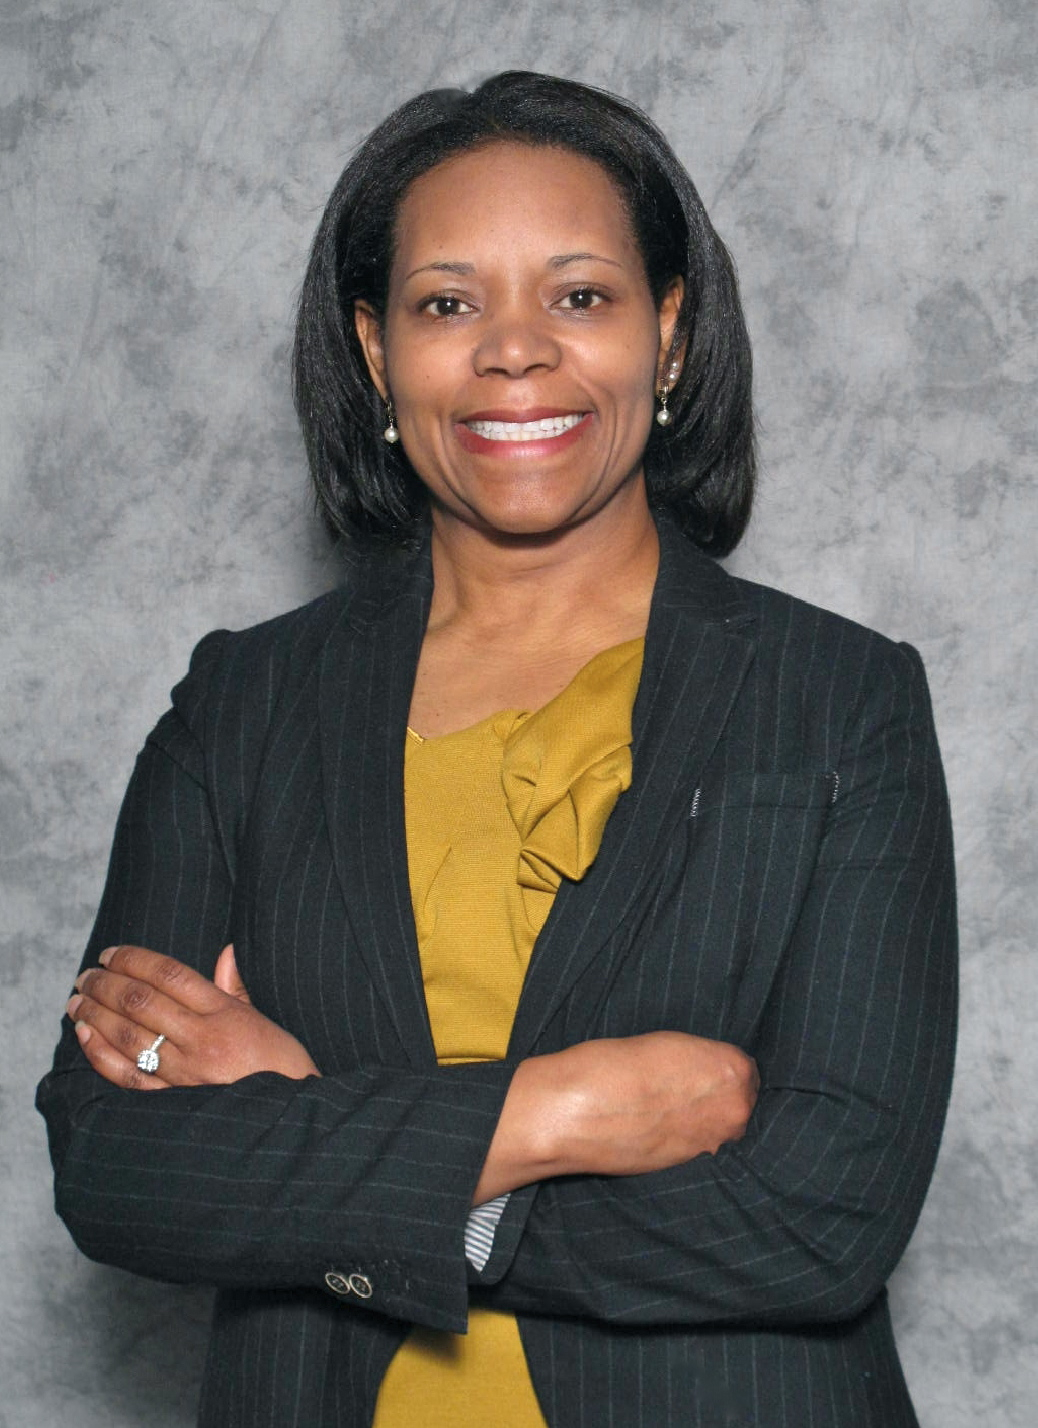 Headshot of Dr. Consuelo Wilkins